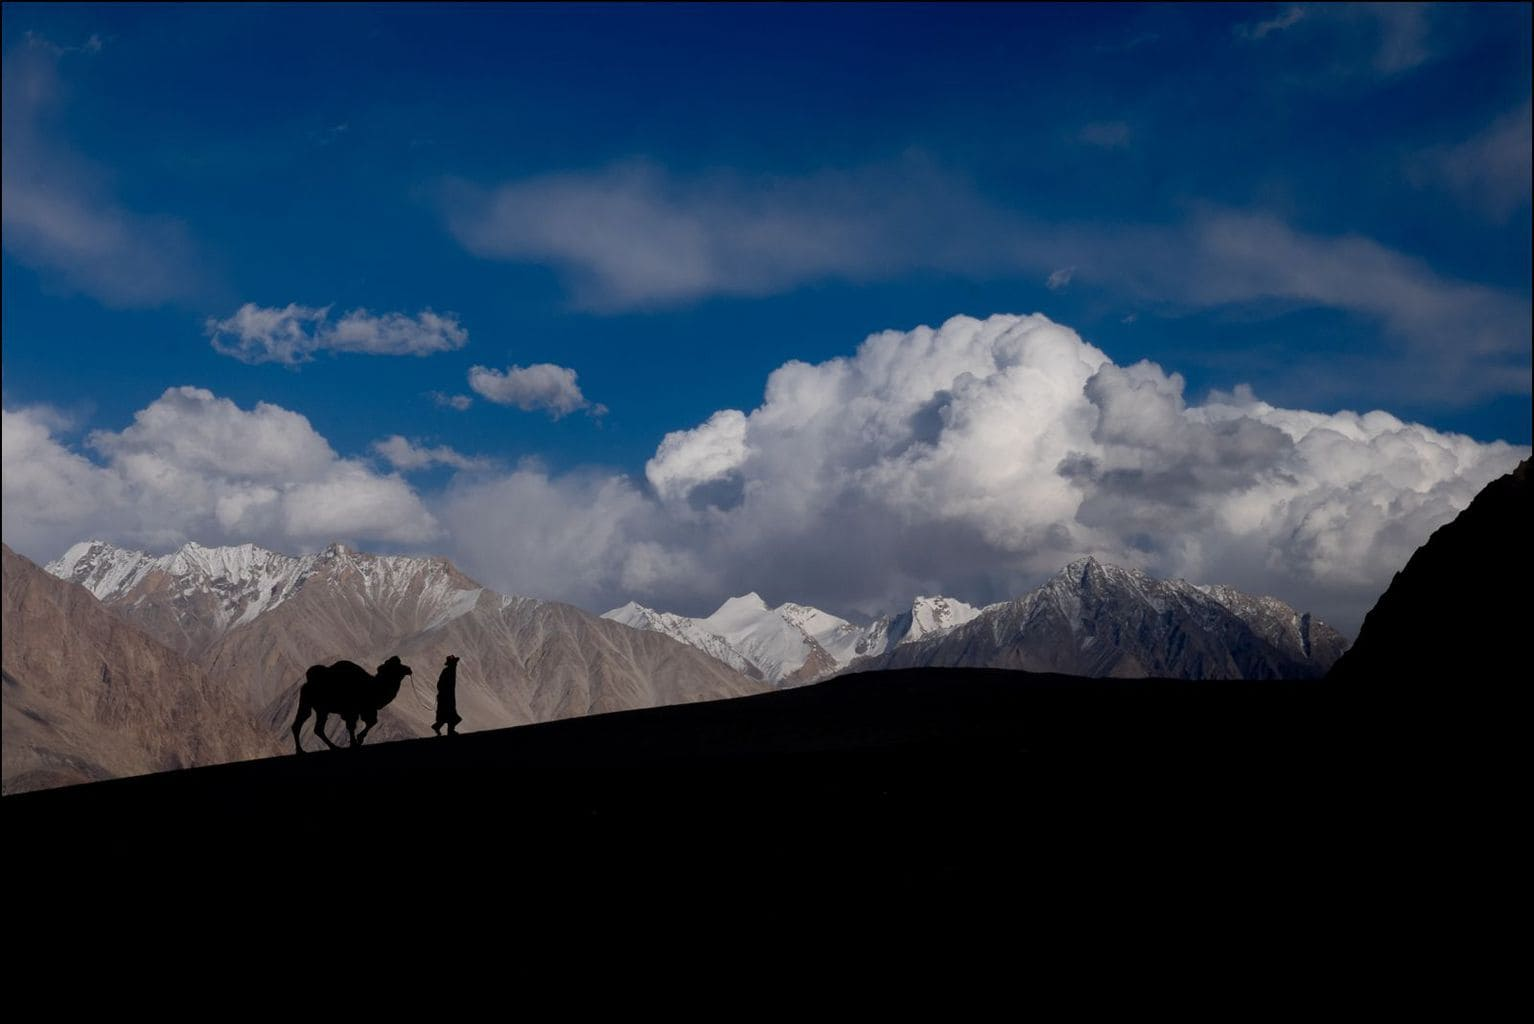 Two Humped Camel - Hunder, Ladakh, India